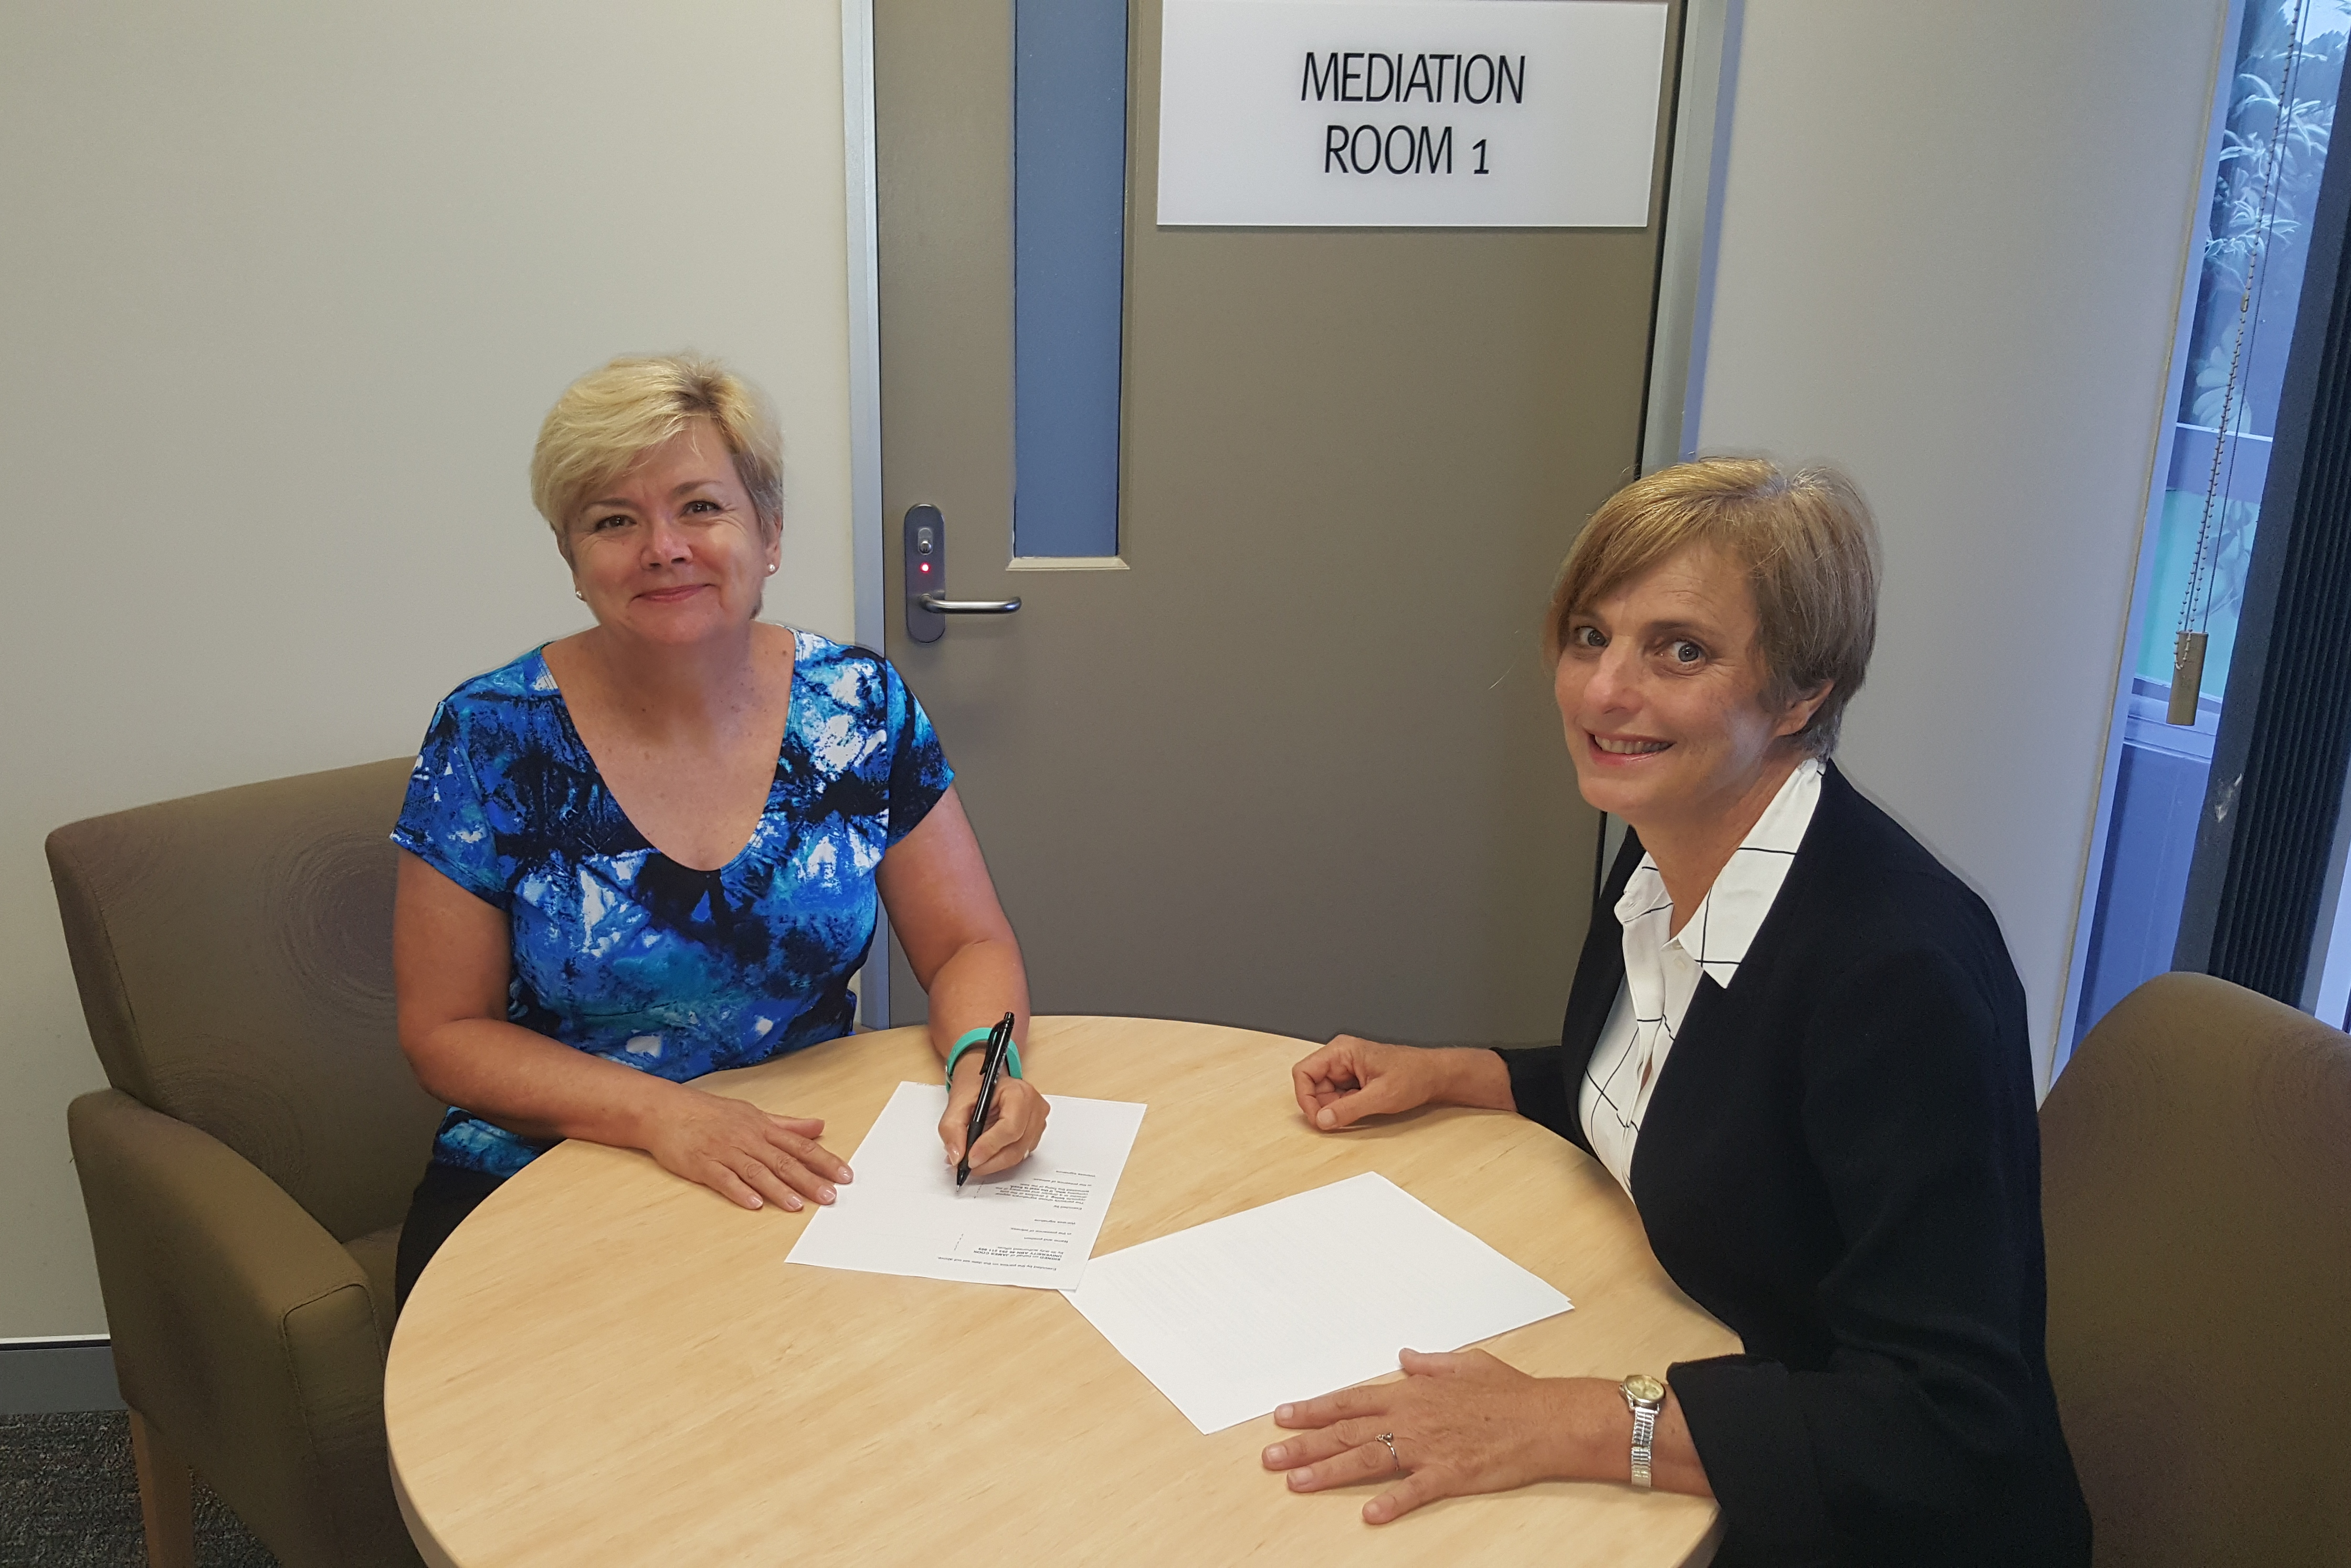 JCU partners with Qld's Department of Justice and Attorney-General